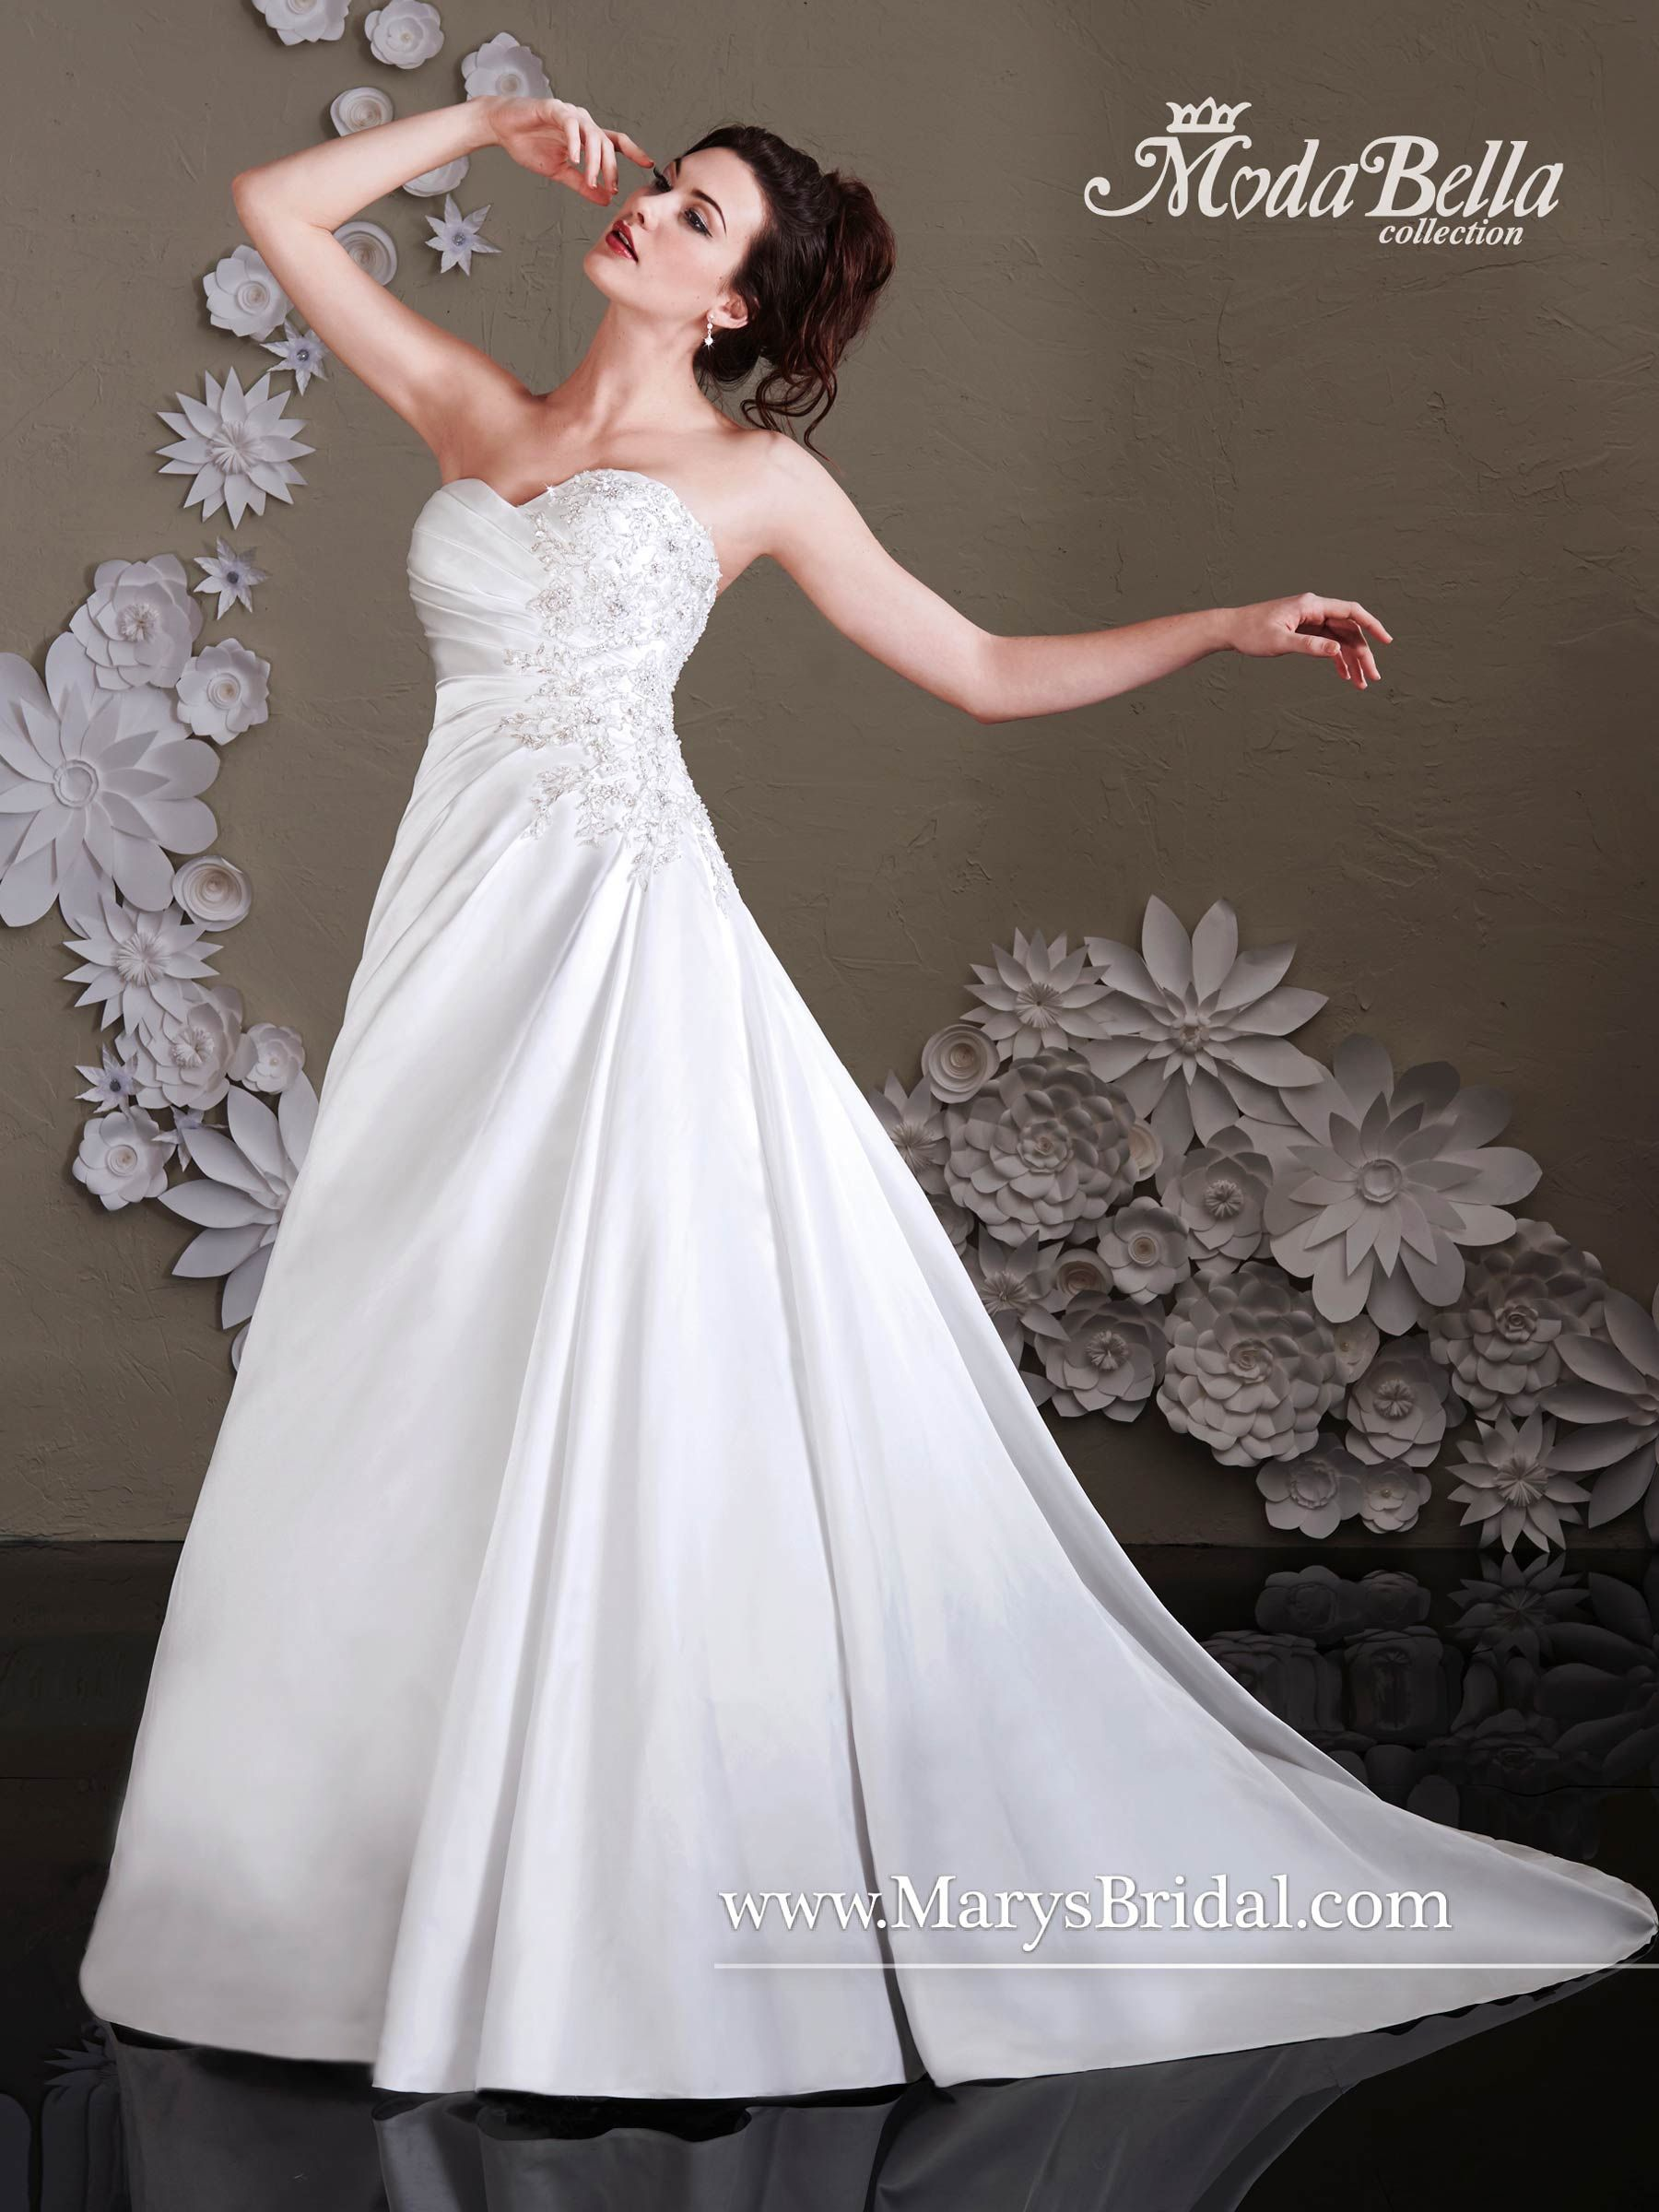 Style 3y395 Is A Strapless Satin Aline Bridal Gown With Sweetheart Neckline And Chapel Train The Pleated Bodice Figure Flattering Making It Great: Pleated Bodice Strapless Wedding Dress At Reisefeber.org